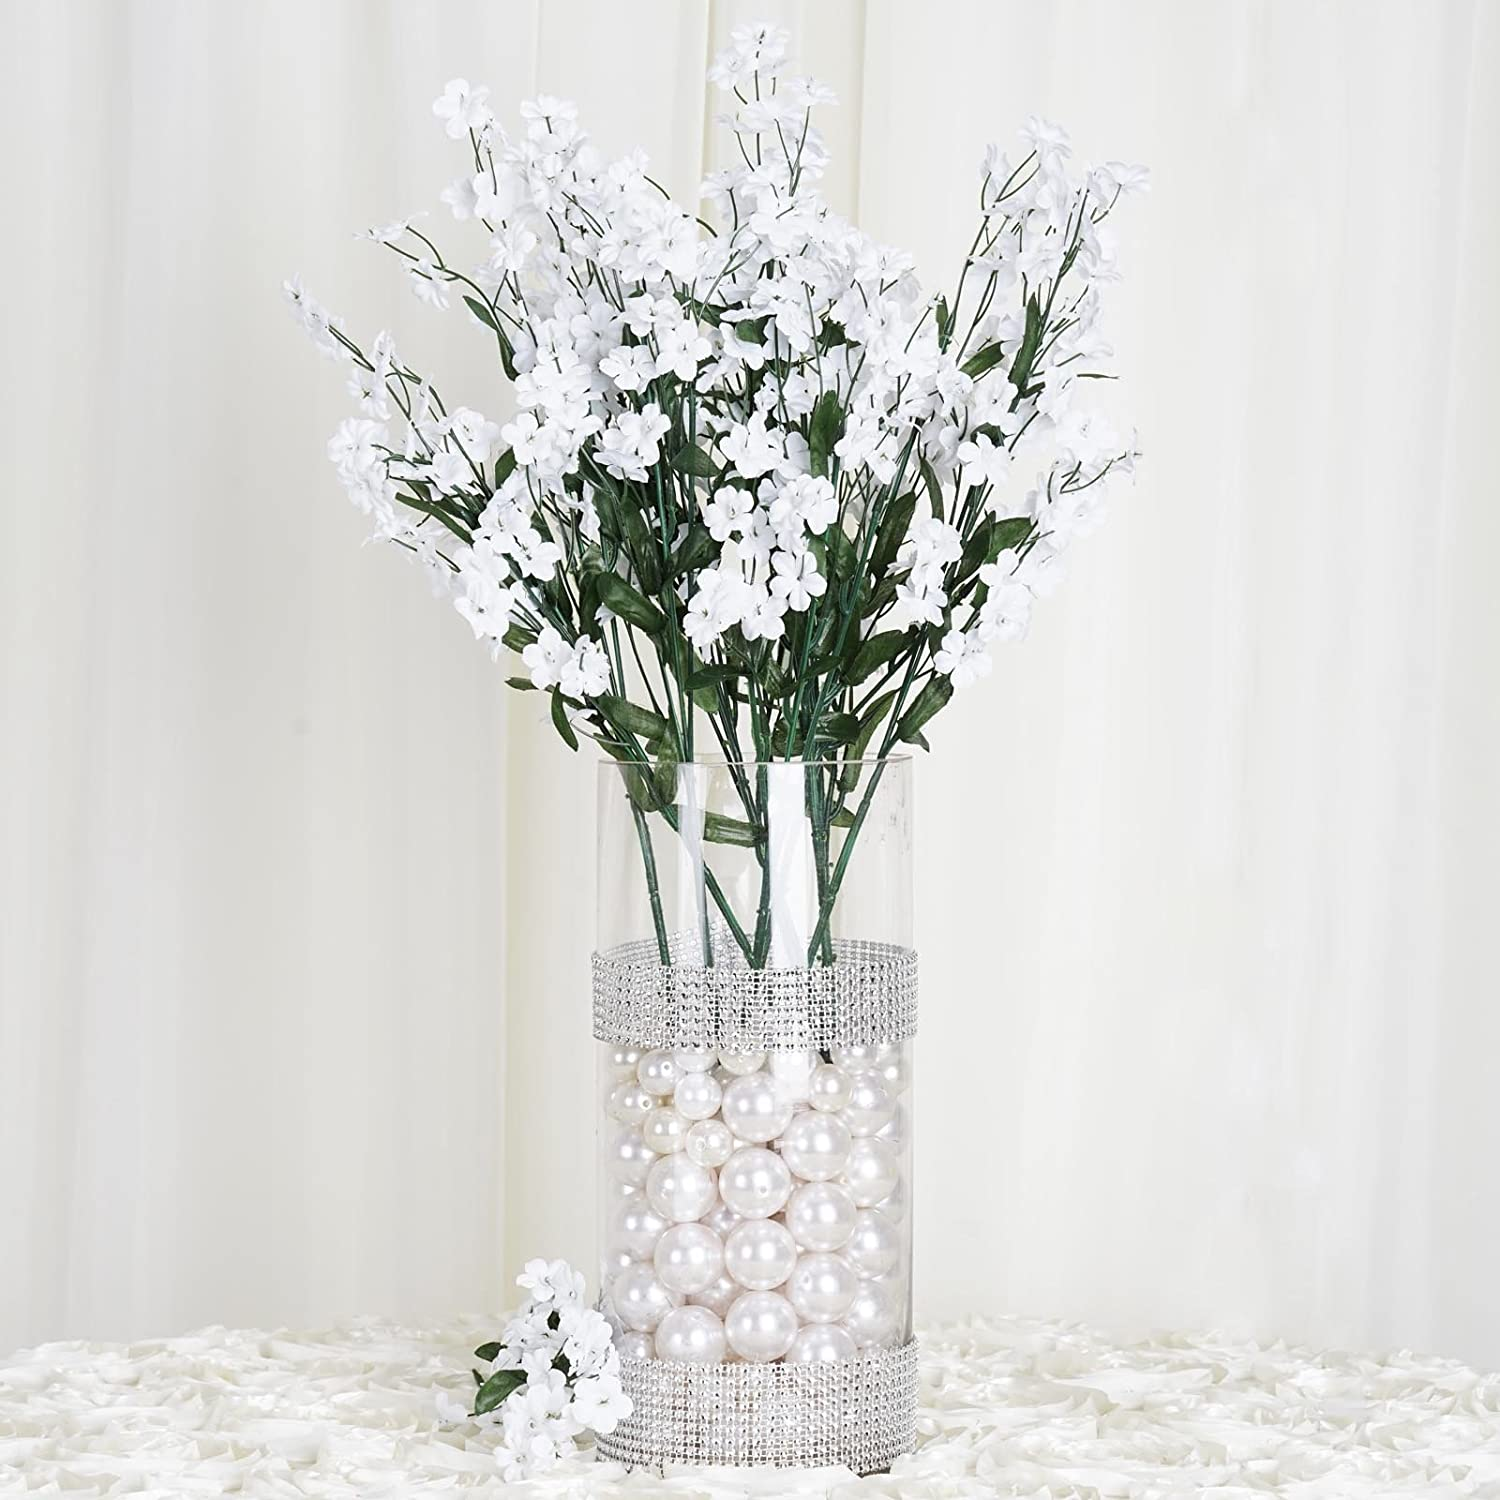 Amazon efavormart 12 bushes baby breath artificial filler amazon efavormart 12 bushes baby breath artificial filler flowers for diy wedding bouquets centerpieces party home decoration white home kitchen izmirmasajfo